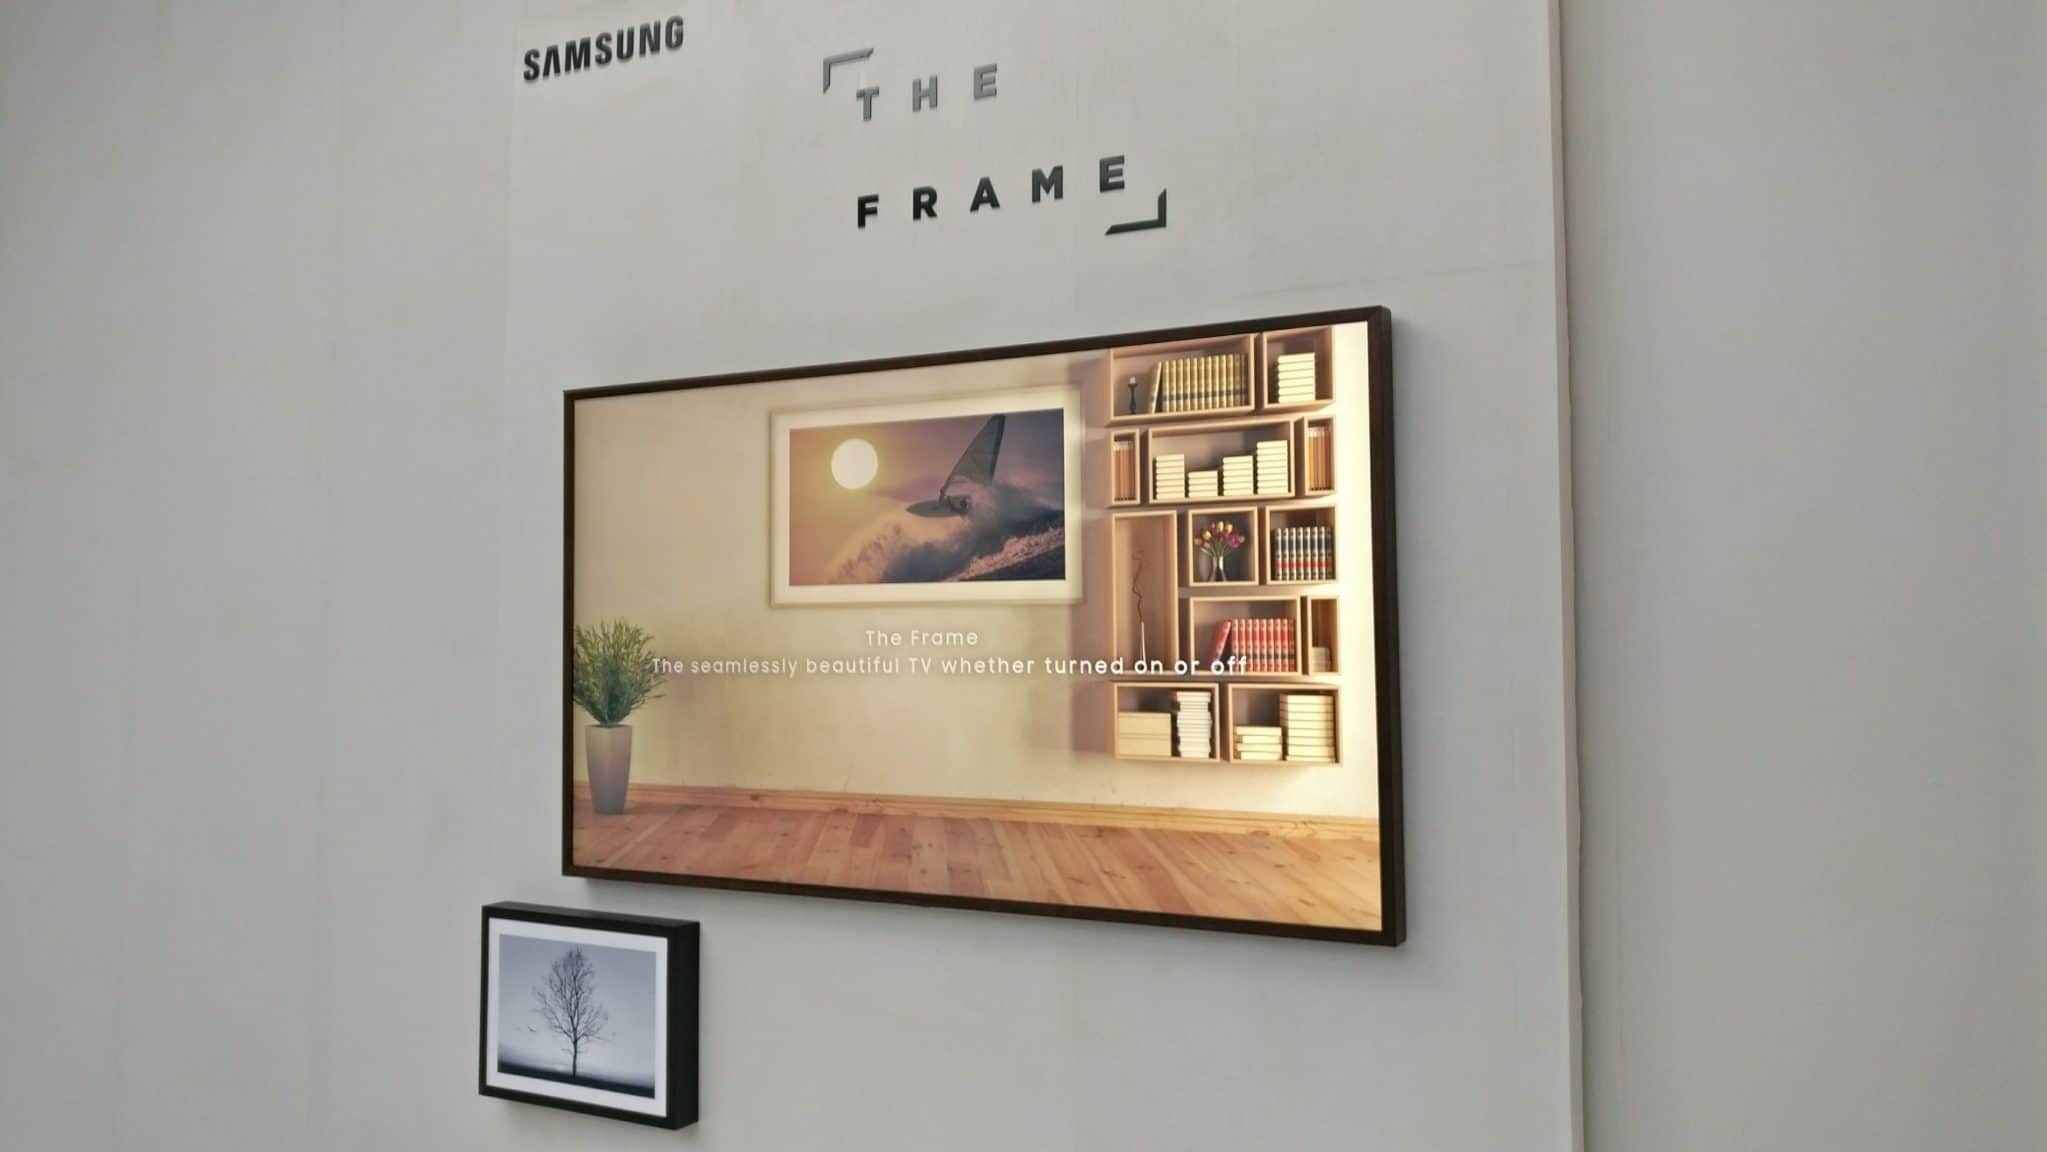 how to put captions on samsung tv